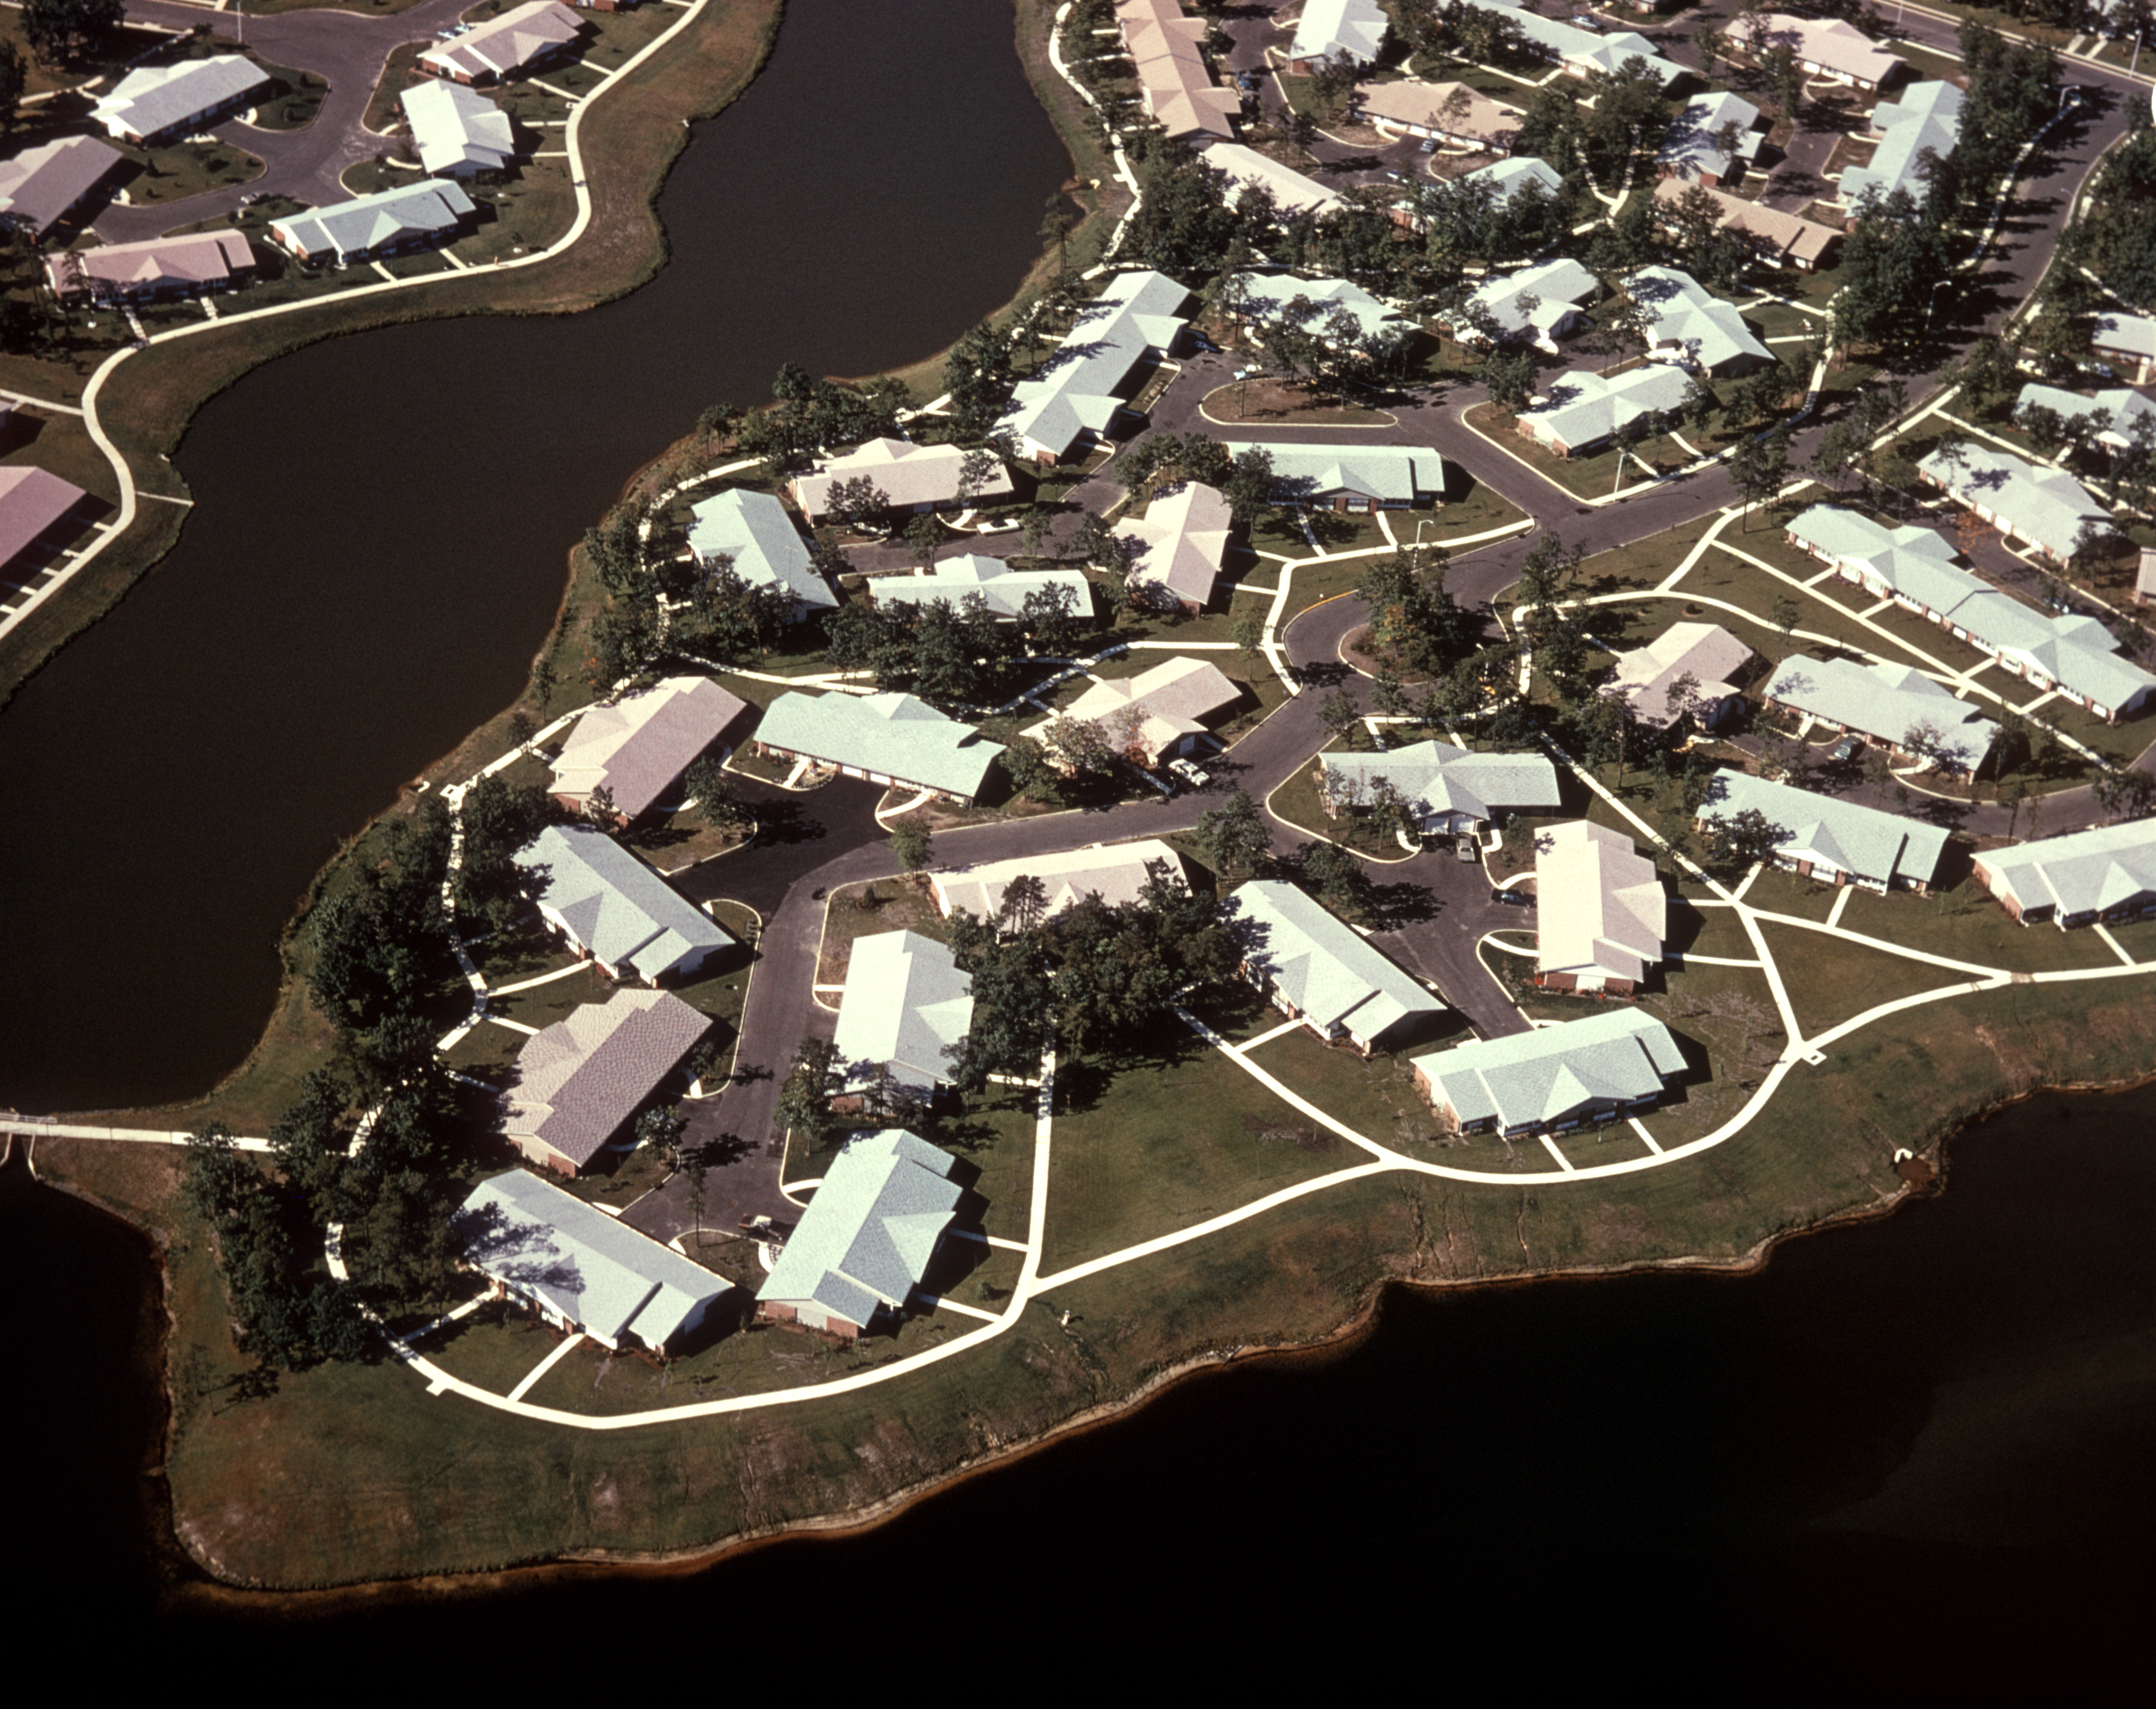 A Florida housing development in the 1970s